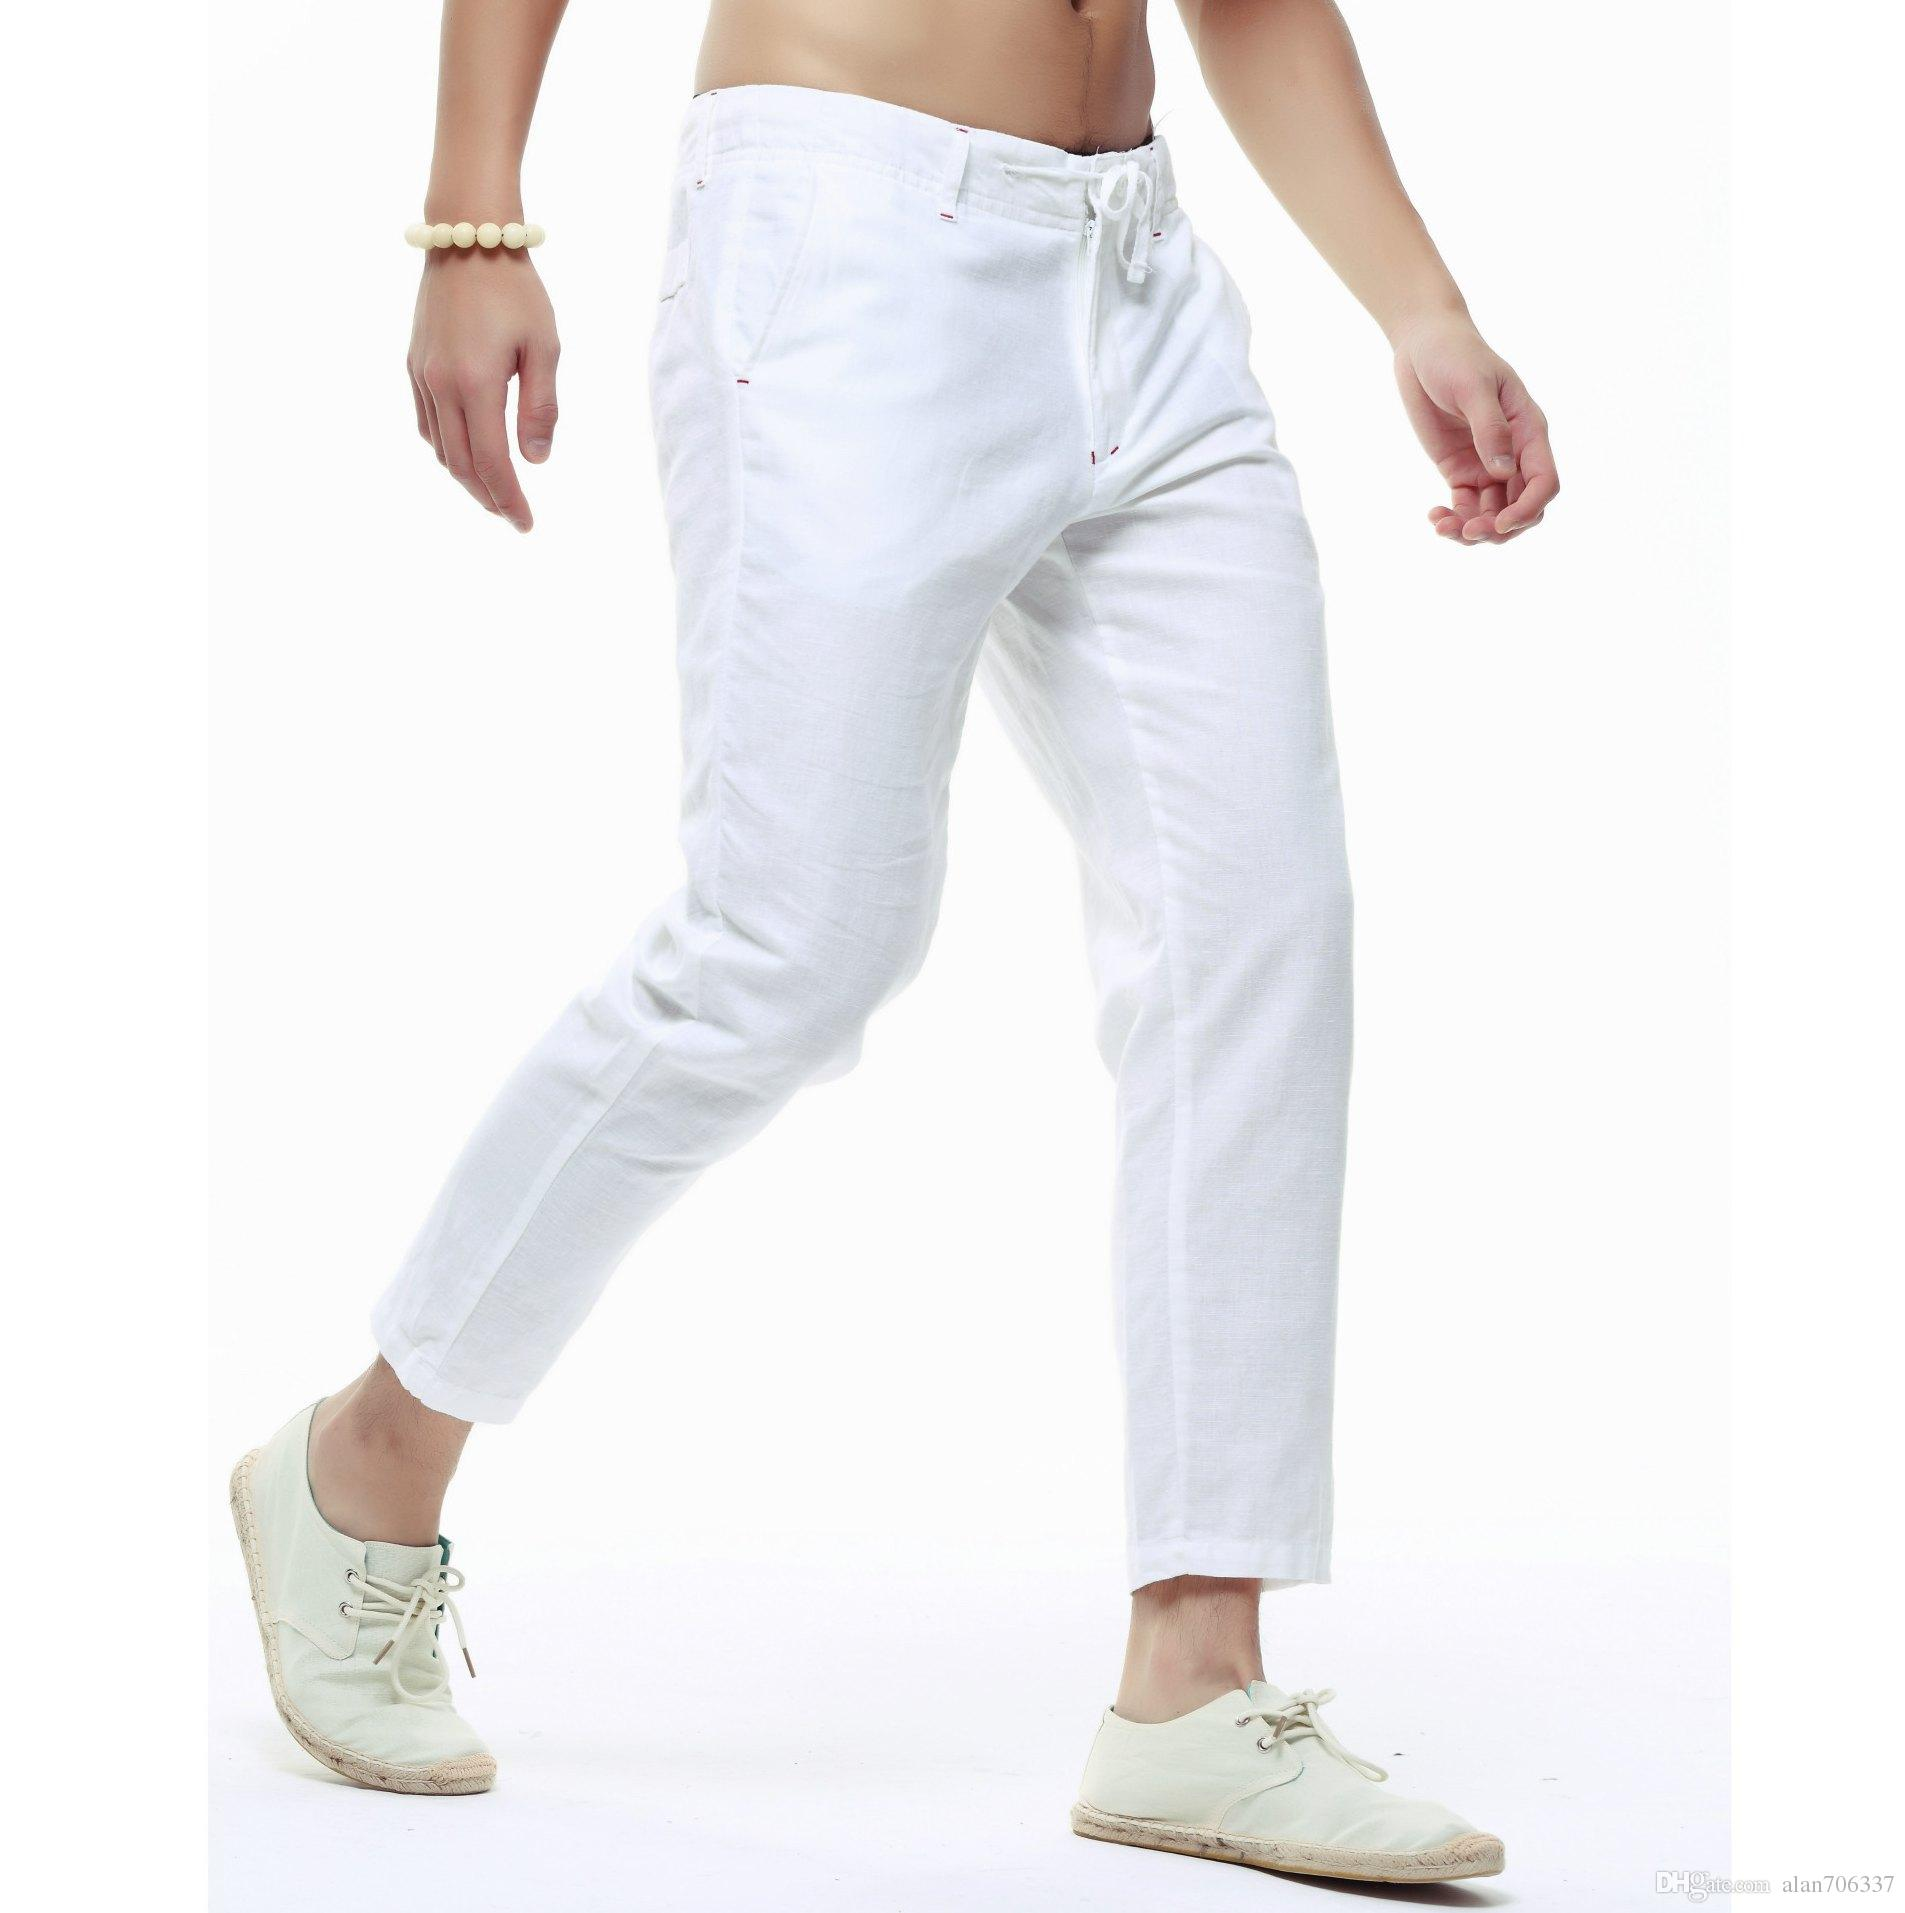 37bcb7c46f1 2019 Men S Linen Cotton Capri Pants Lightweight Slim Legs Casual Linen Pants  Men Summer Breathable Cotton Pants PT 136 From Alan706337